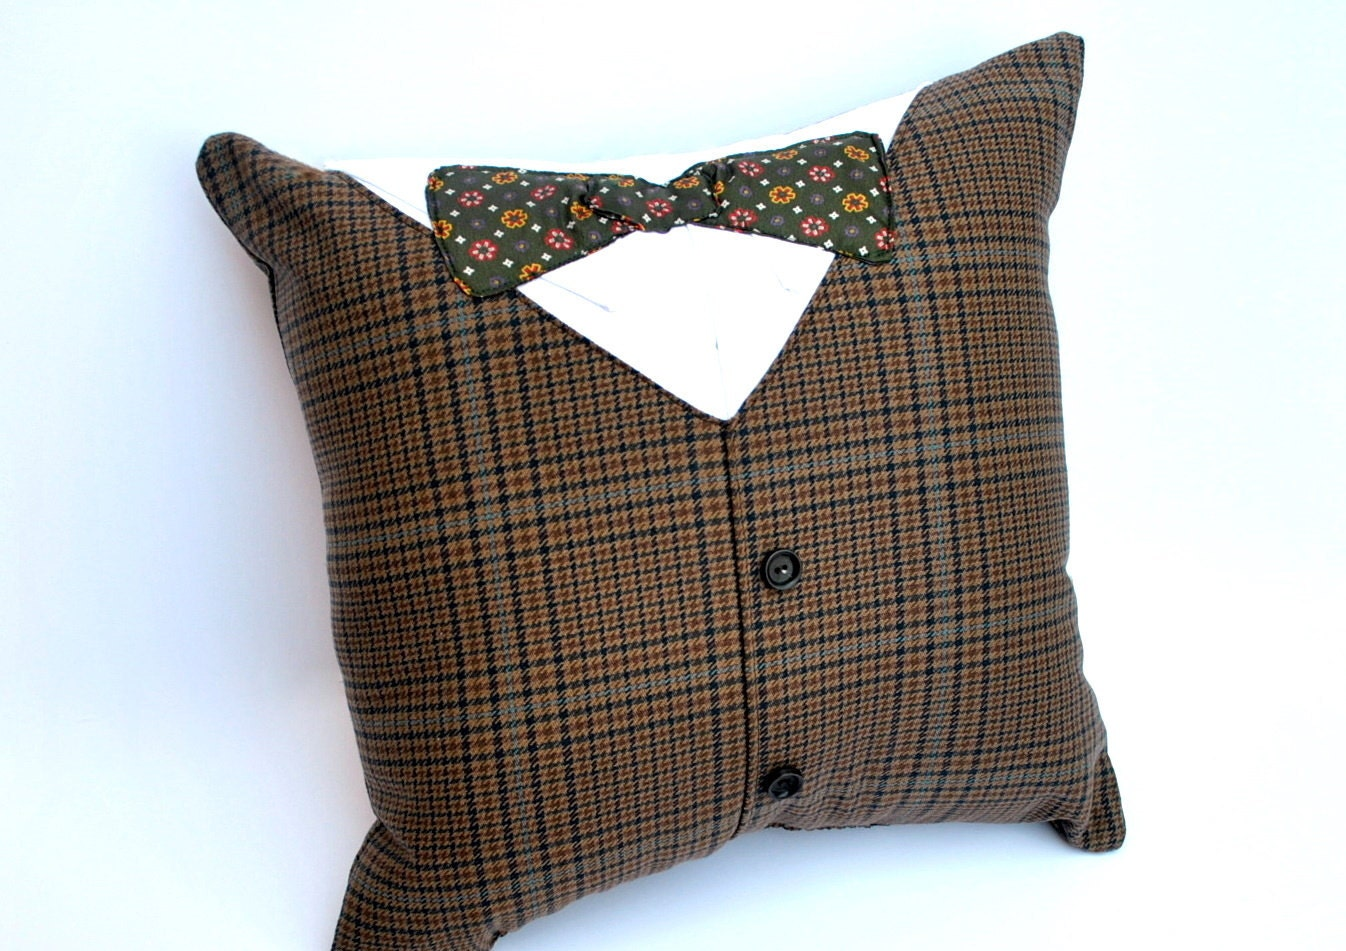 Recycled Men's Suit and Bow Tie Pillow